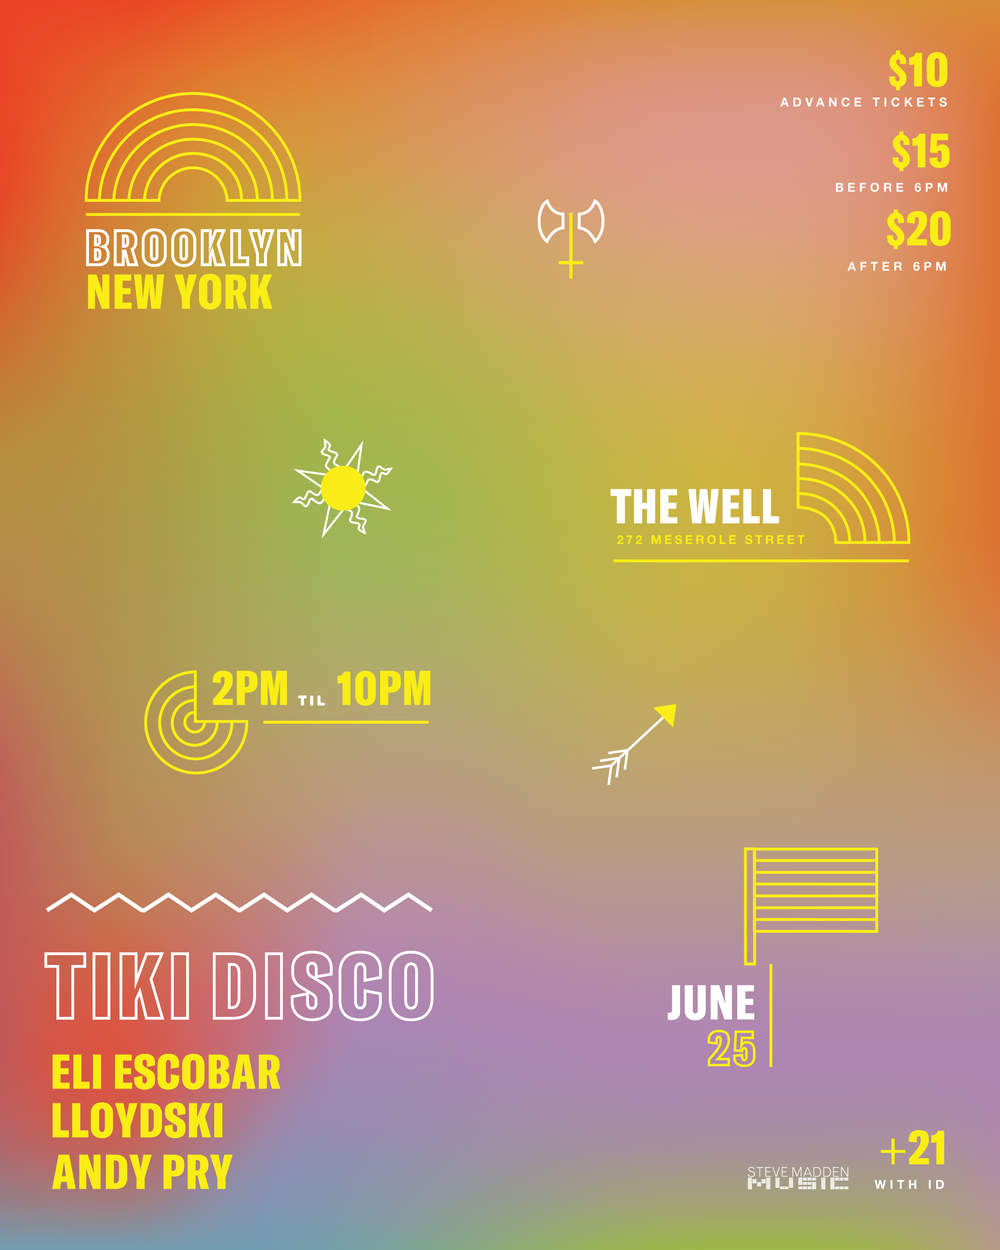 2017-06-13_tikidisco_poster_01.png